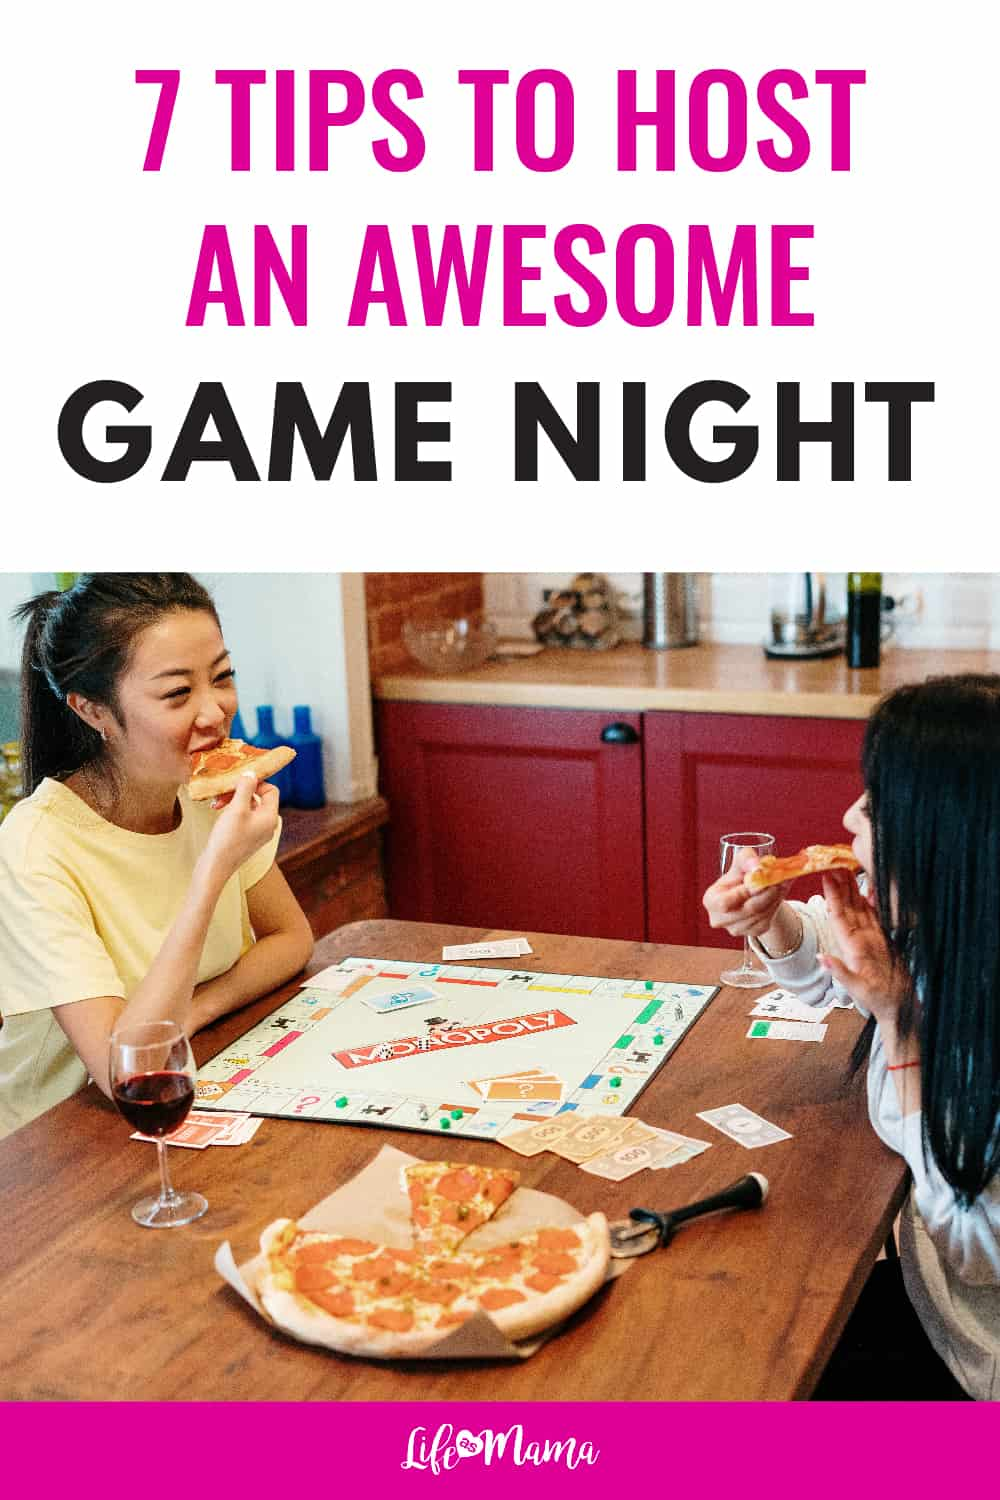 7 Tips To Host An Awesome Game Night